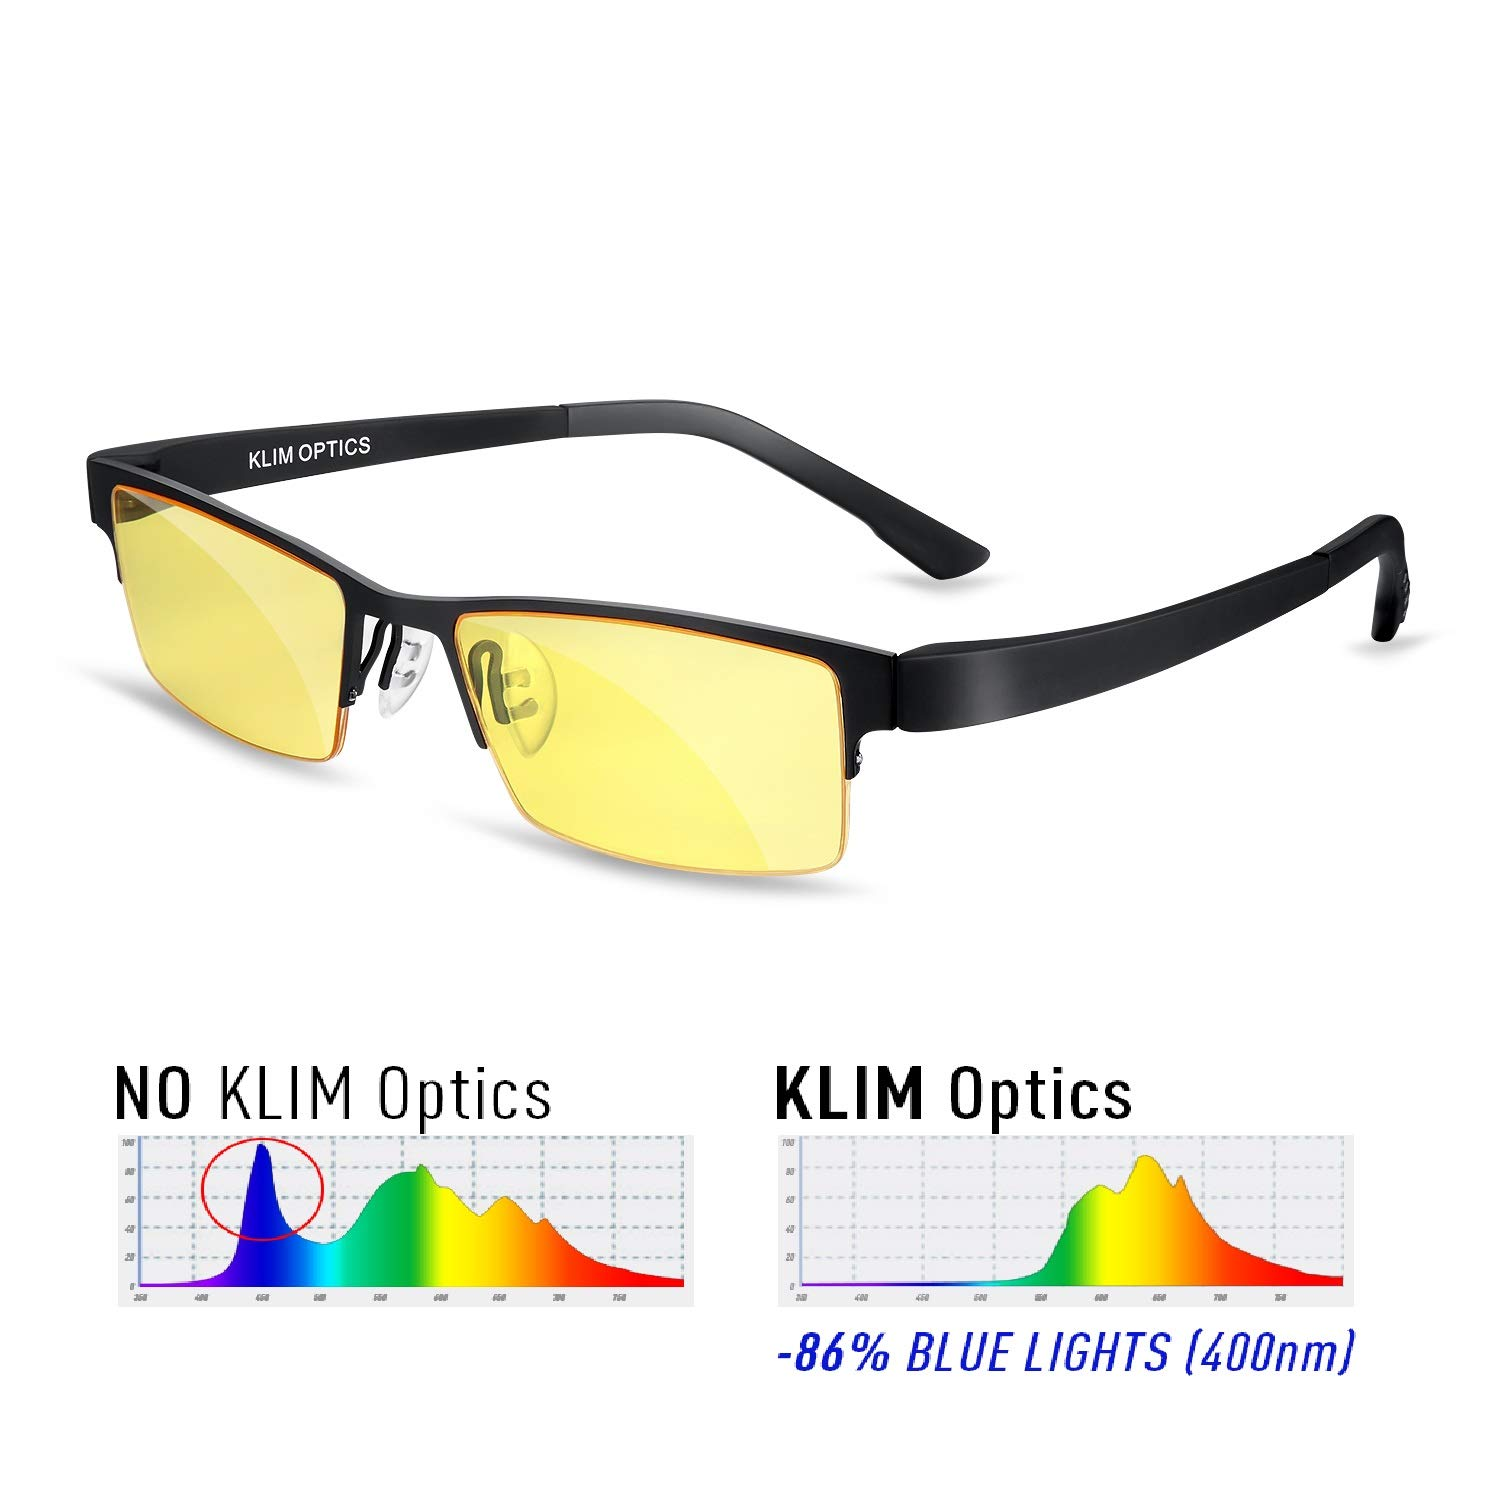 e5dc29b731 KLIM Optics - Blue Light Blocking Glasses - Reduce Eye Strain and Fatigue -  Blue Blocker Gaming Glasses PC Gamer Mobile TV - High Protection for  Screens and ...